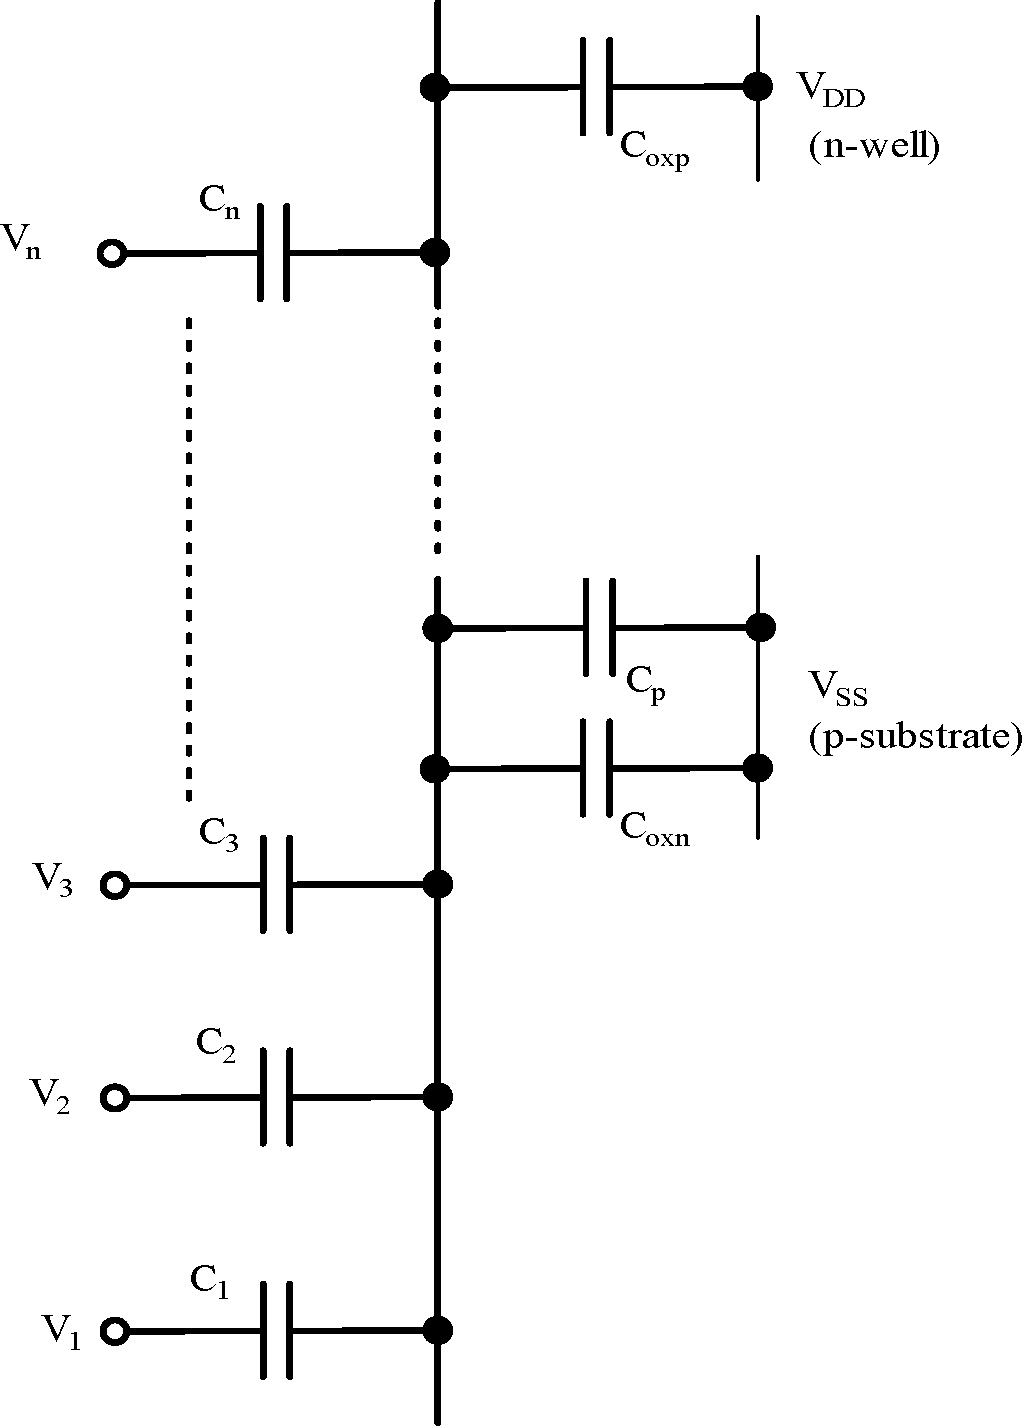 Power Supply Current Ips Based Testing Of Cmos Amplifier Circuit Analog Isolation Amplifiercircuit Diagram With And Without Floating Gate Input Transistors Semantic Scholar